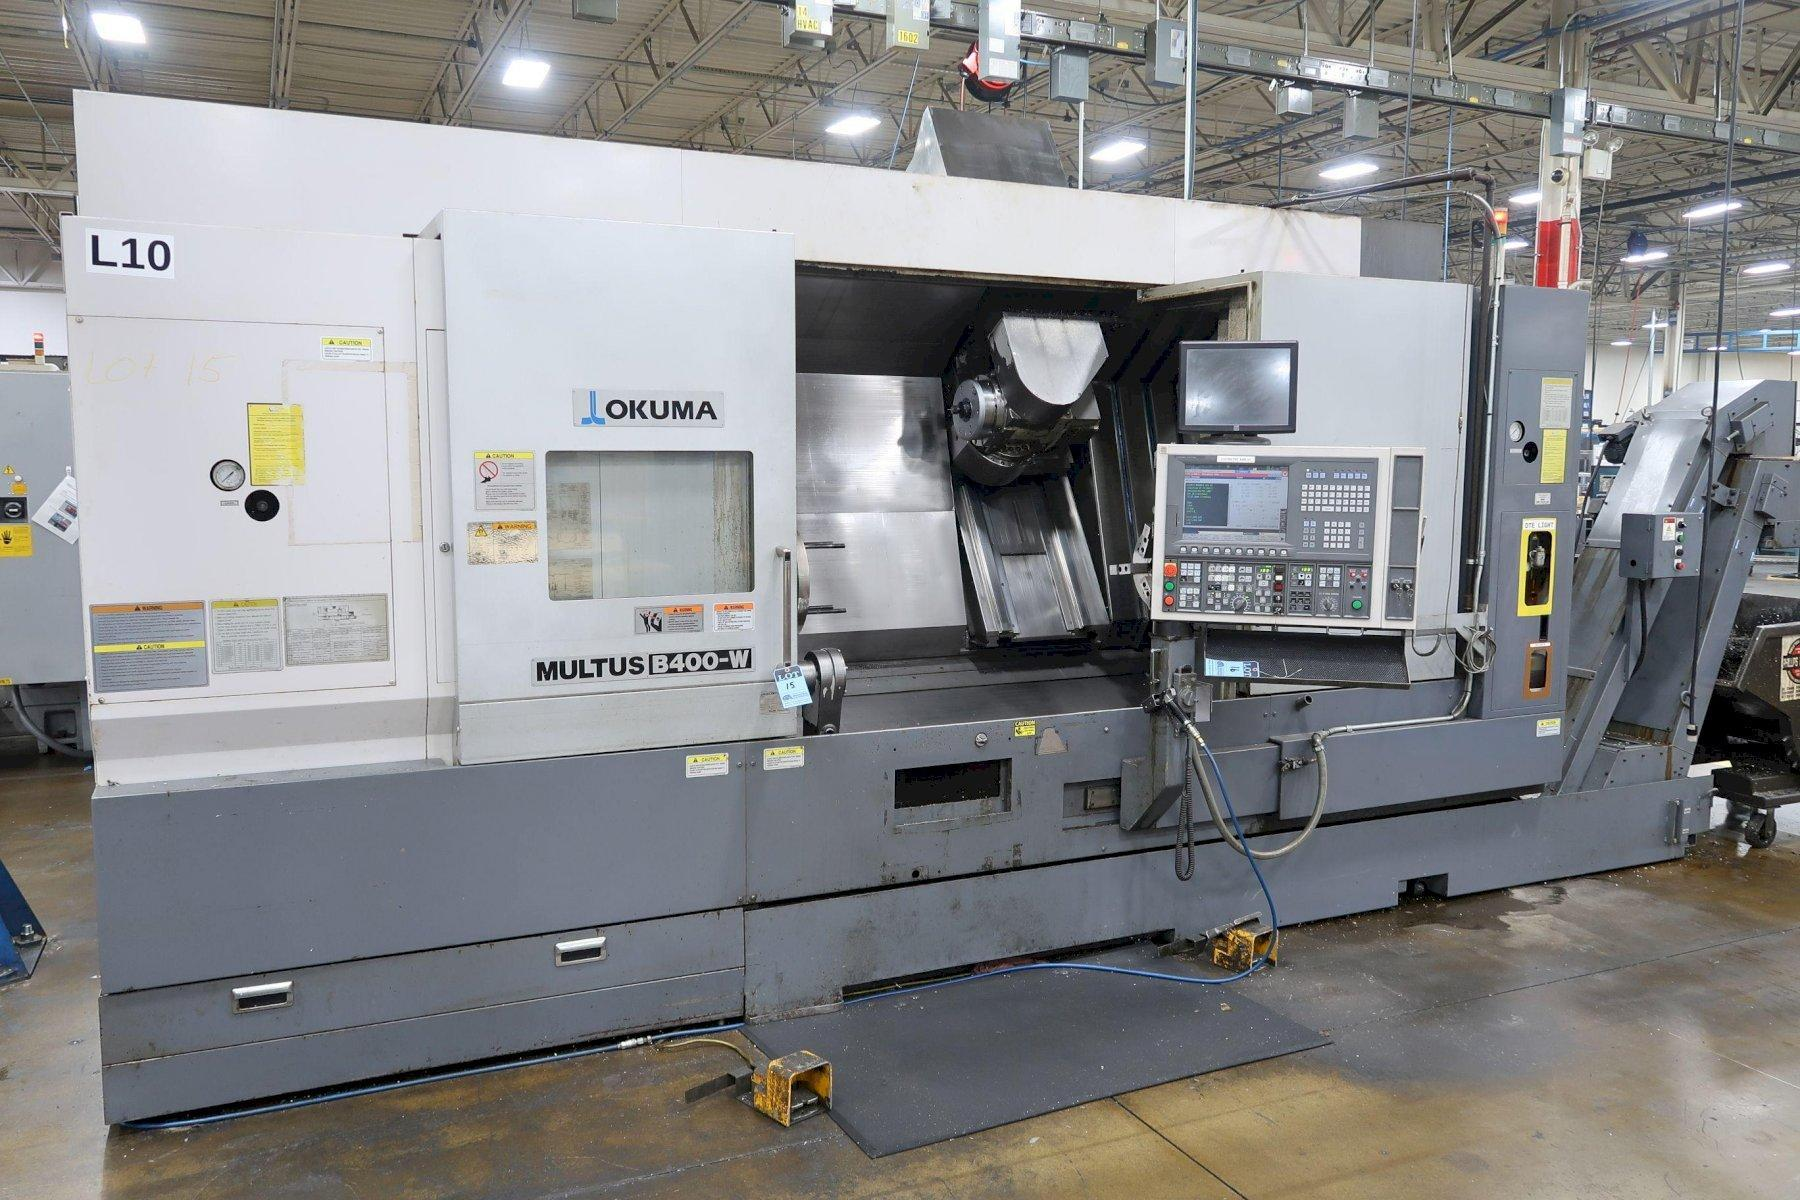 Okuma Multas B400W CNC Turning/Milling Machine with (Y) Axis